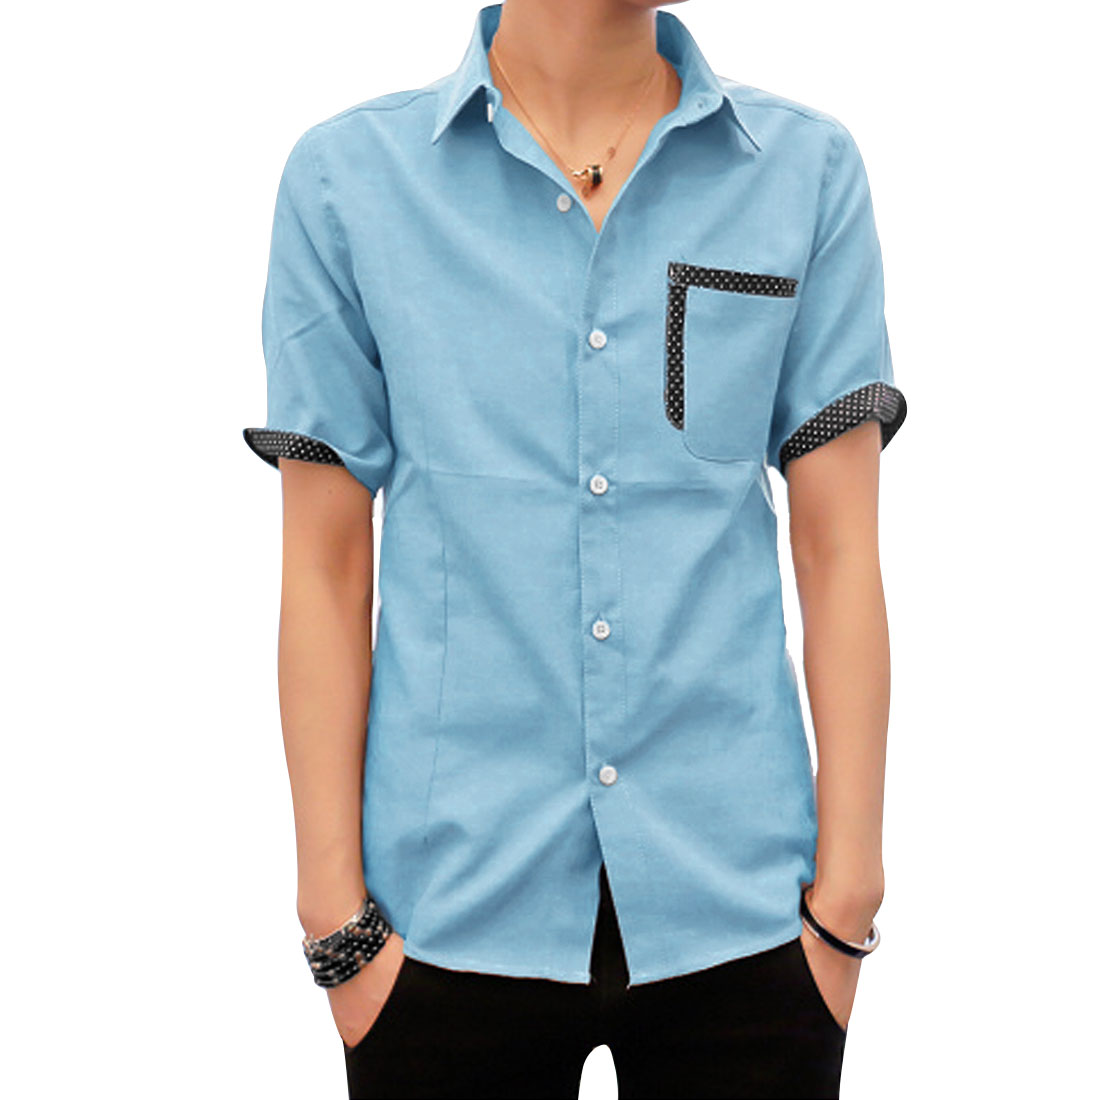 Men Point Collar Button Up Short Sleeve Chest Pocket Round Hem Dots Decor Shirt Pale Blue S